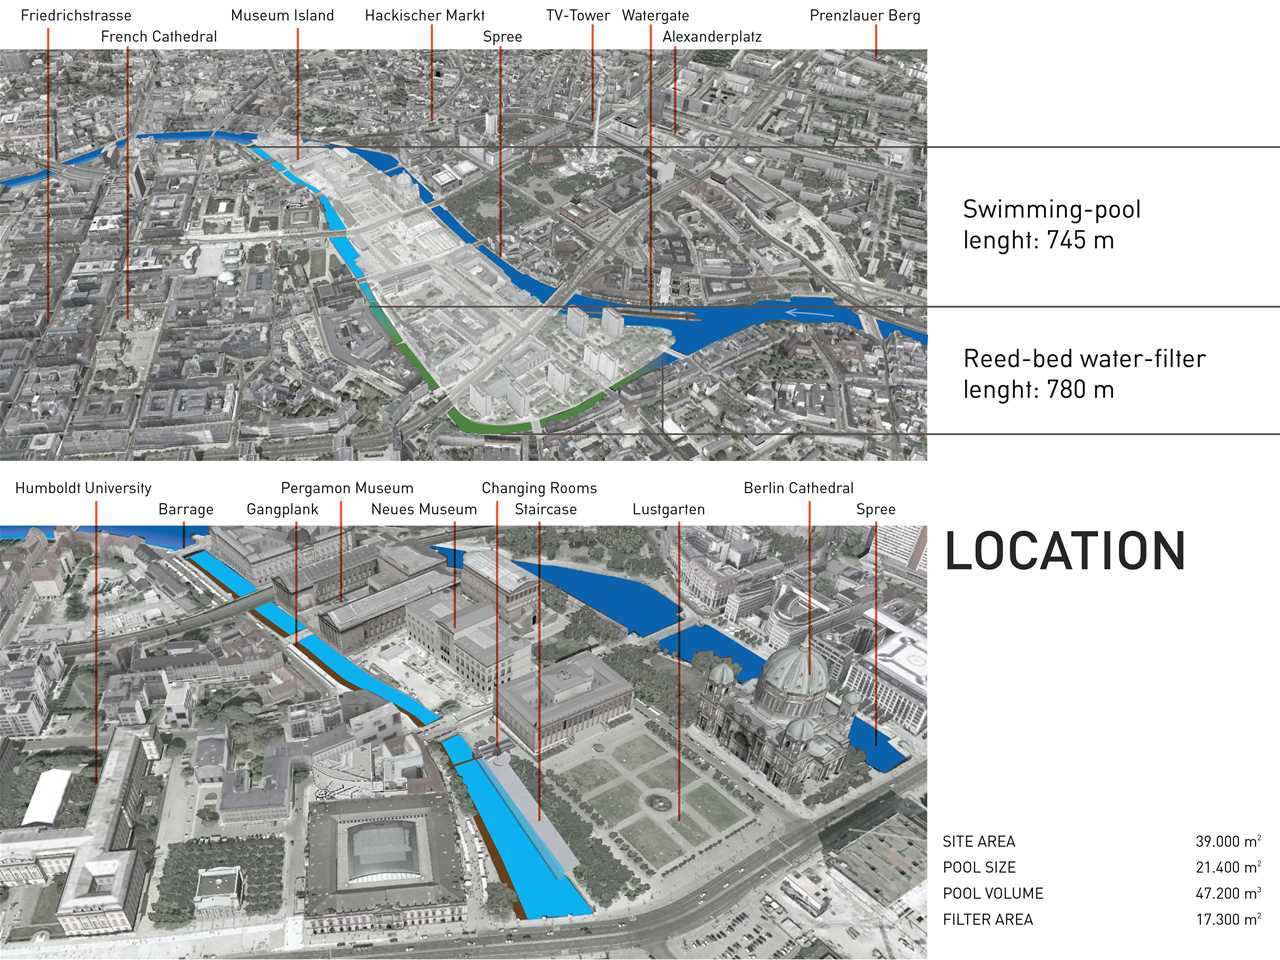 Project entry 2011 Europe – Urban renewal and swimming-pool precinct, Berlin, Germany